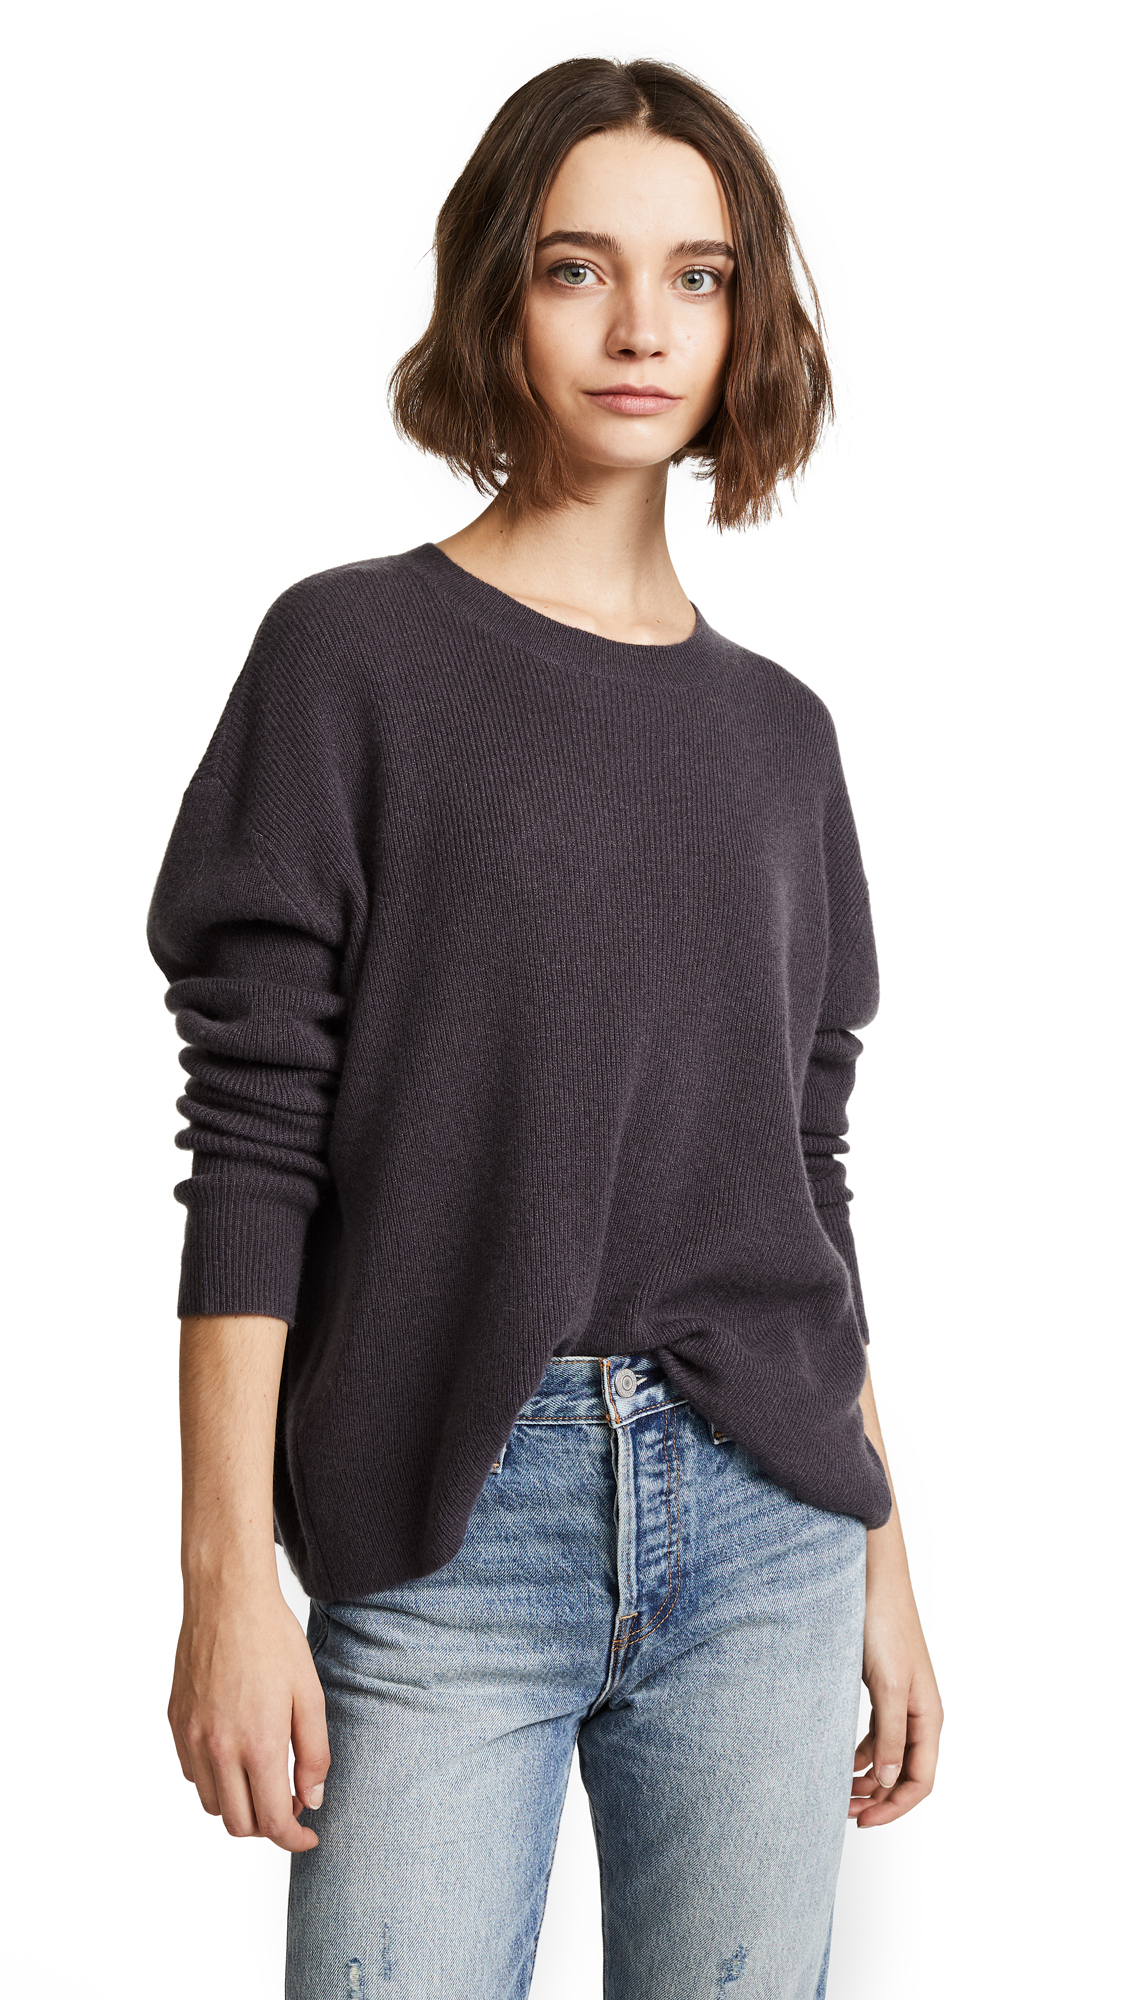 360 SWEATER Cynthia Sweater